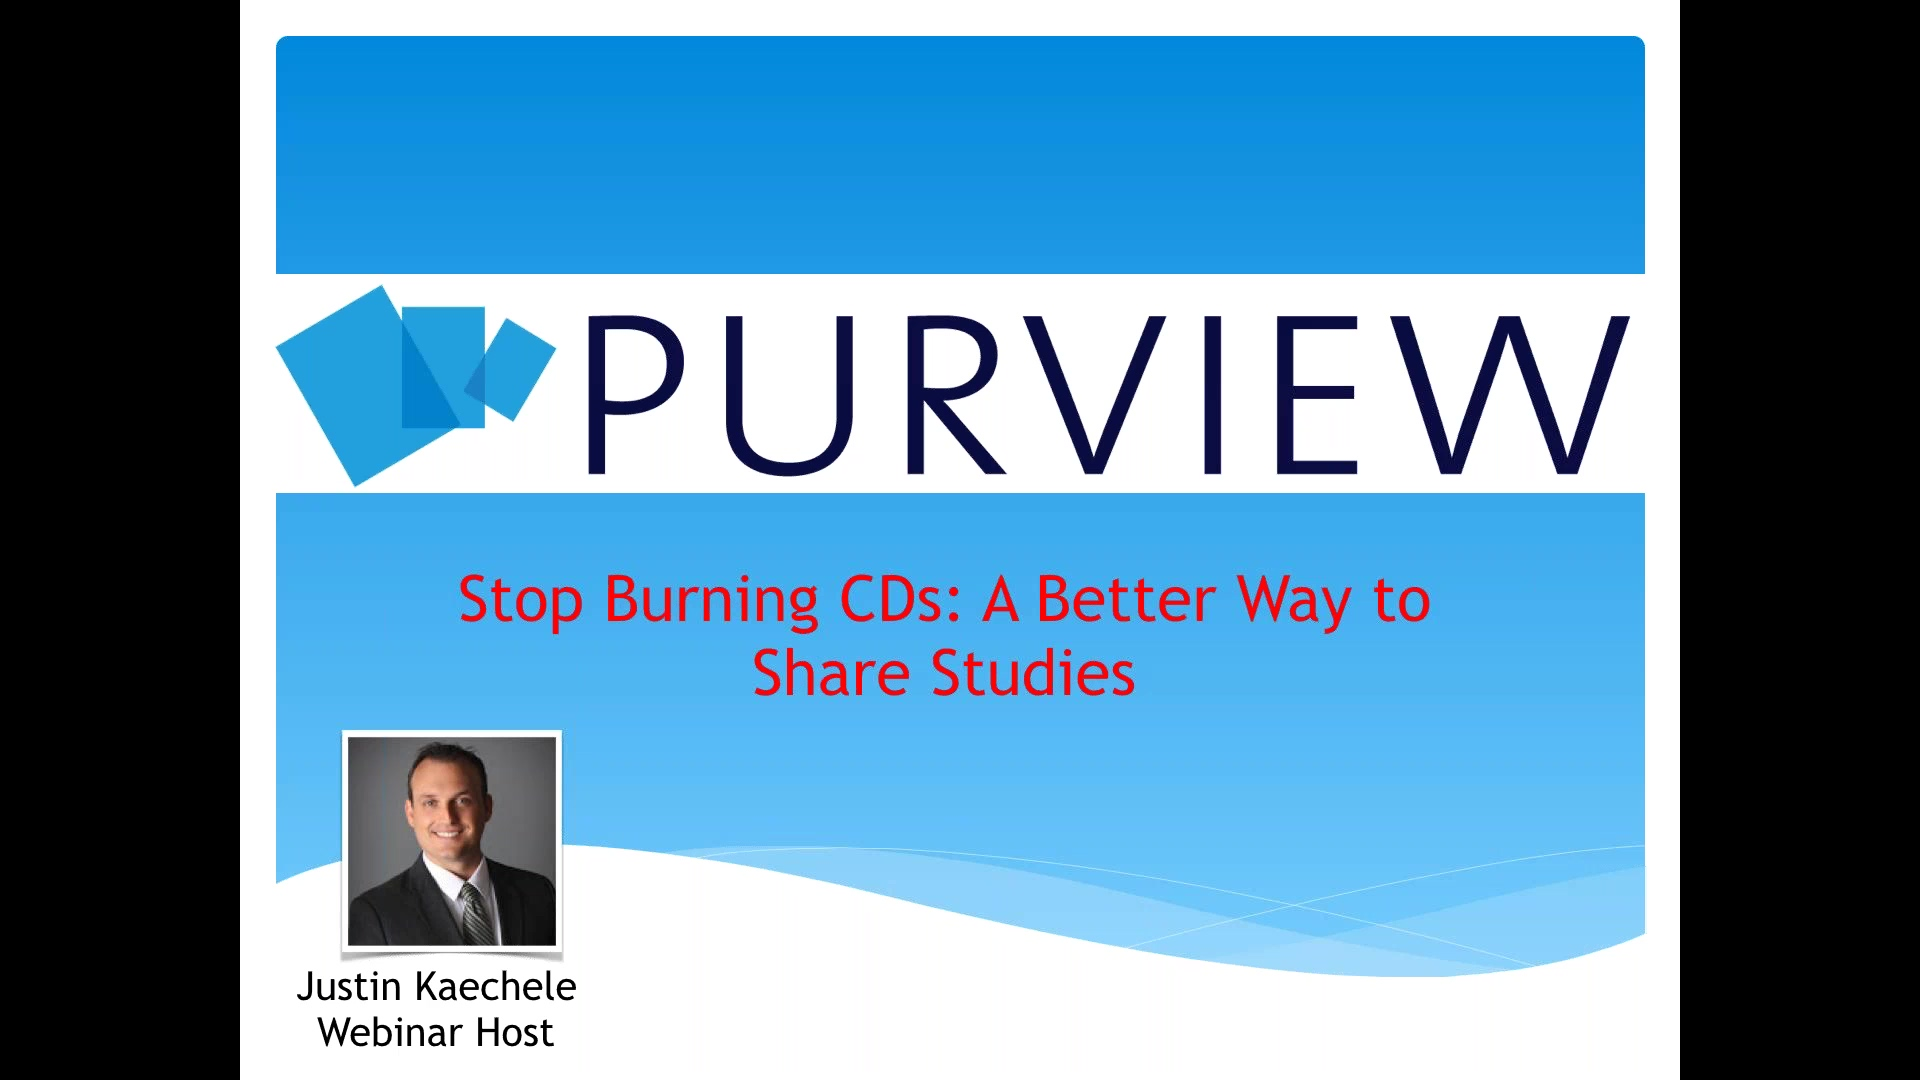 Microwebinar: Stop Burning CDs - A better way to share images